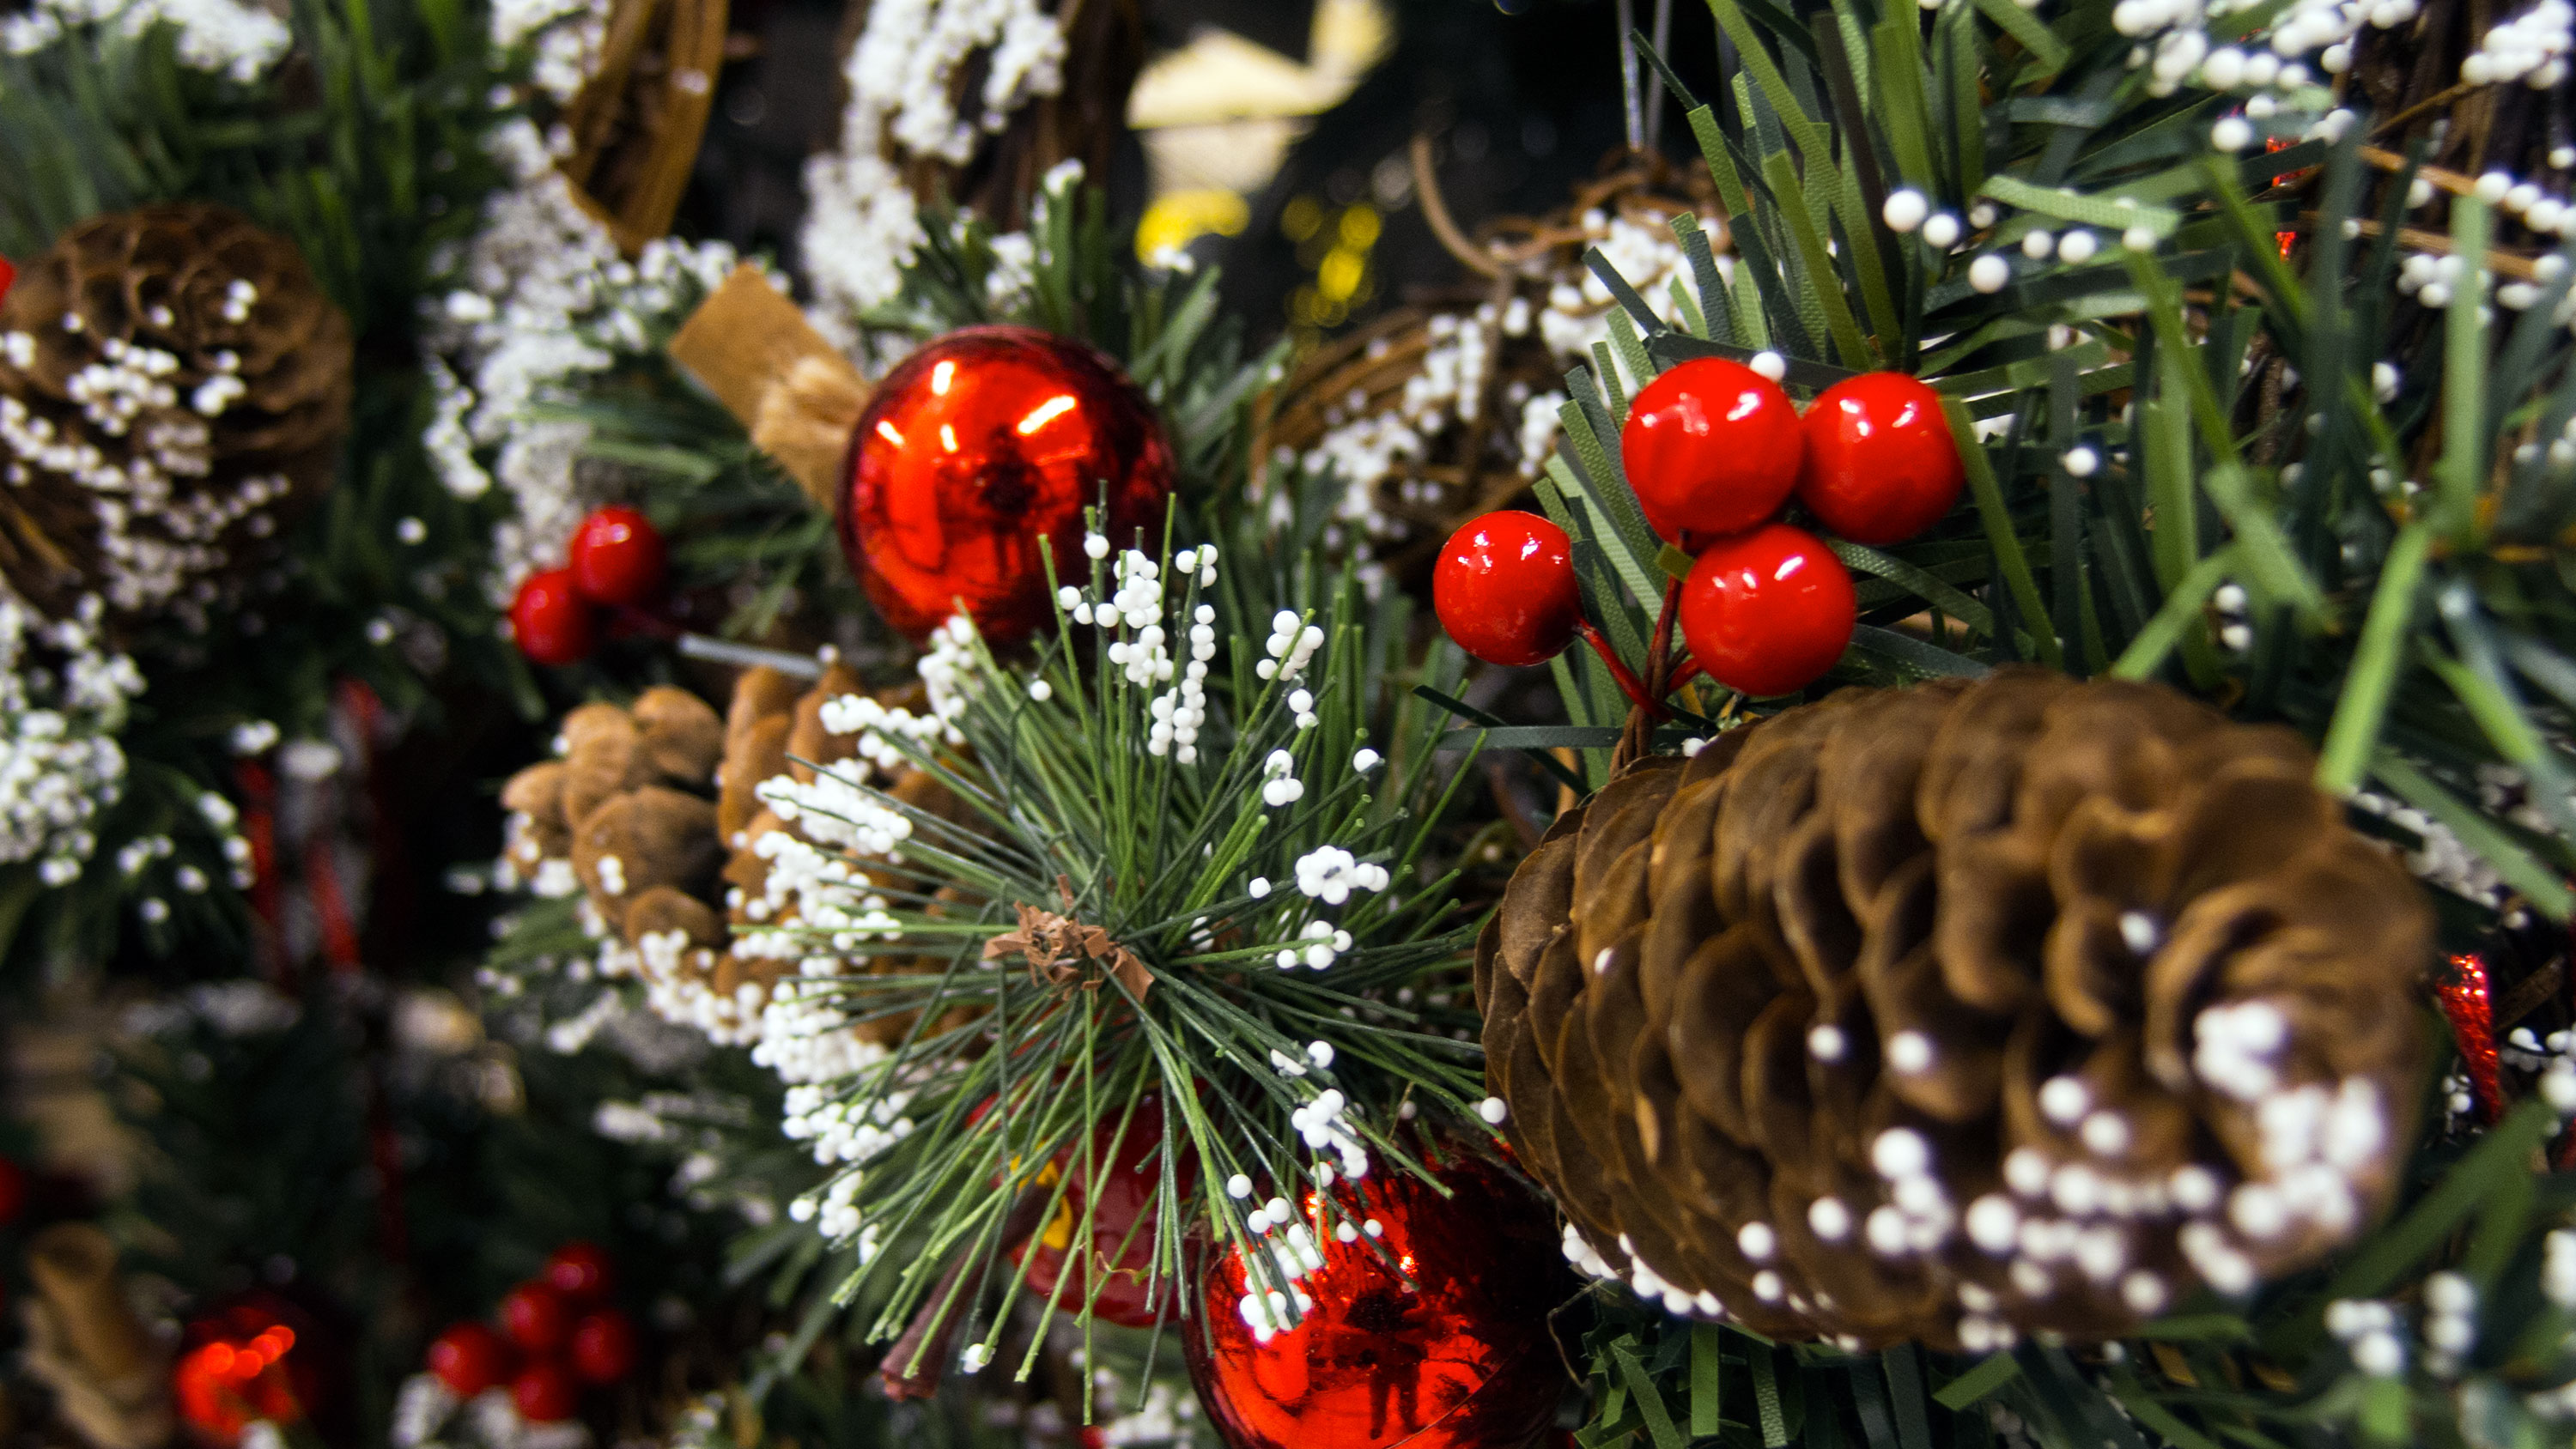 free image: christmas tree decorations | libreshot public domain photos